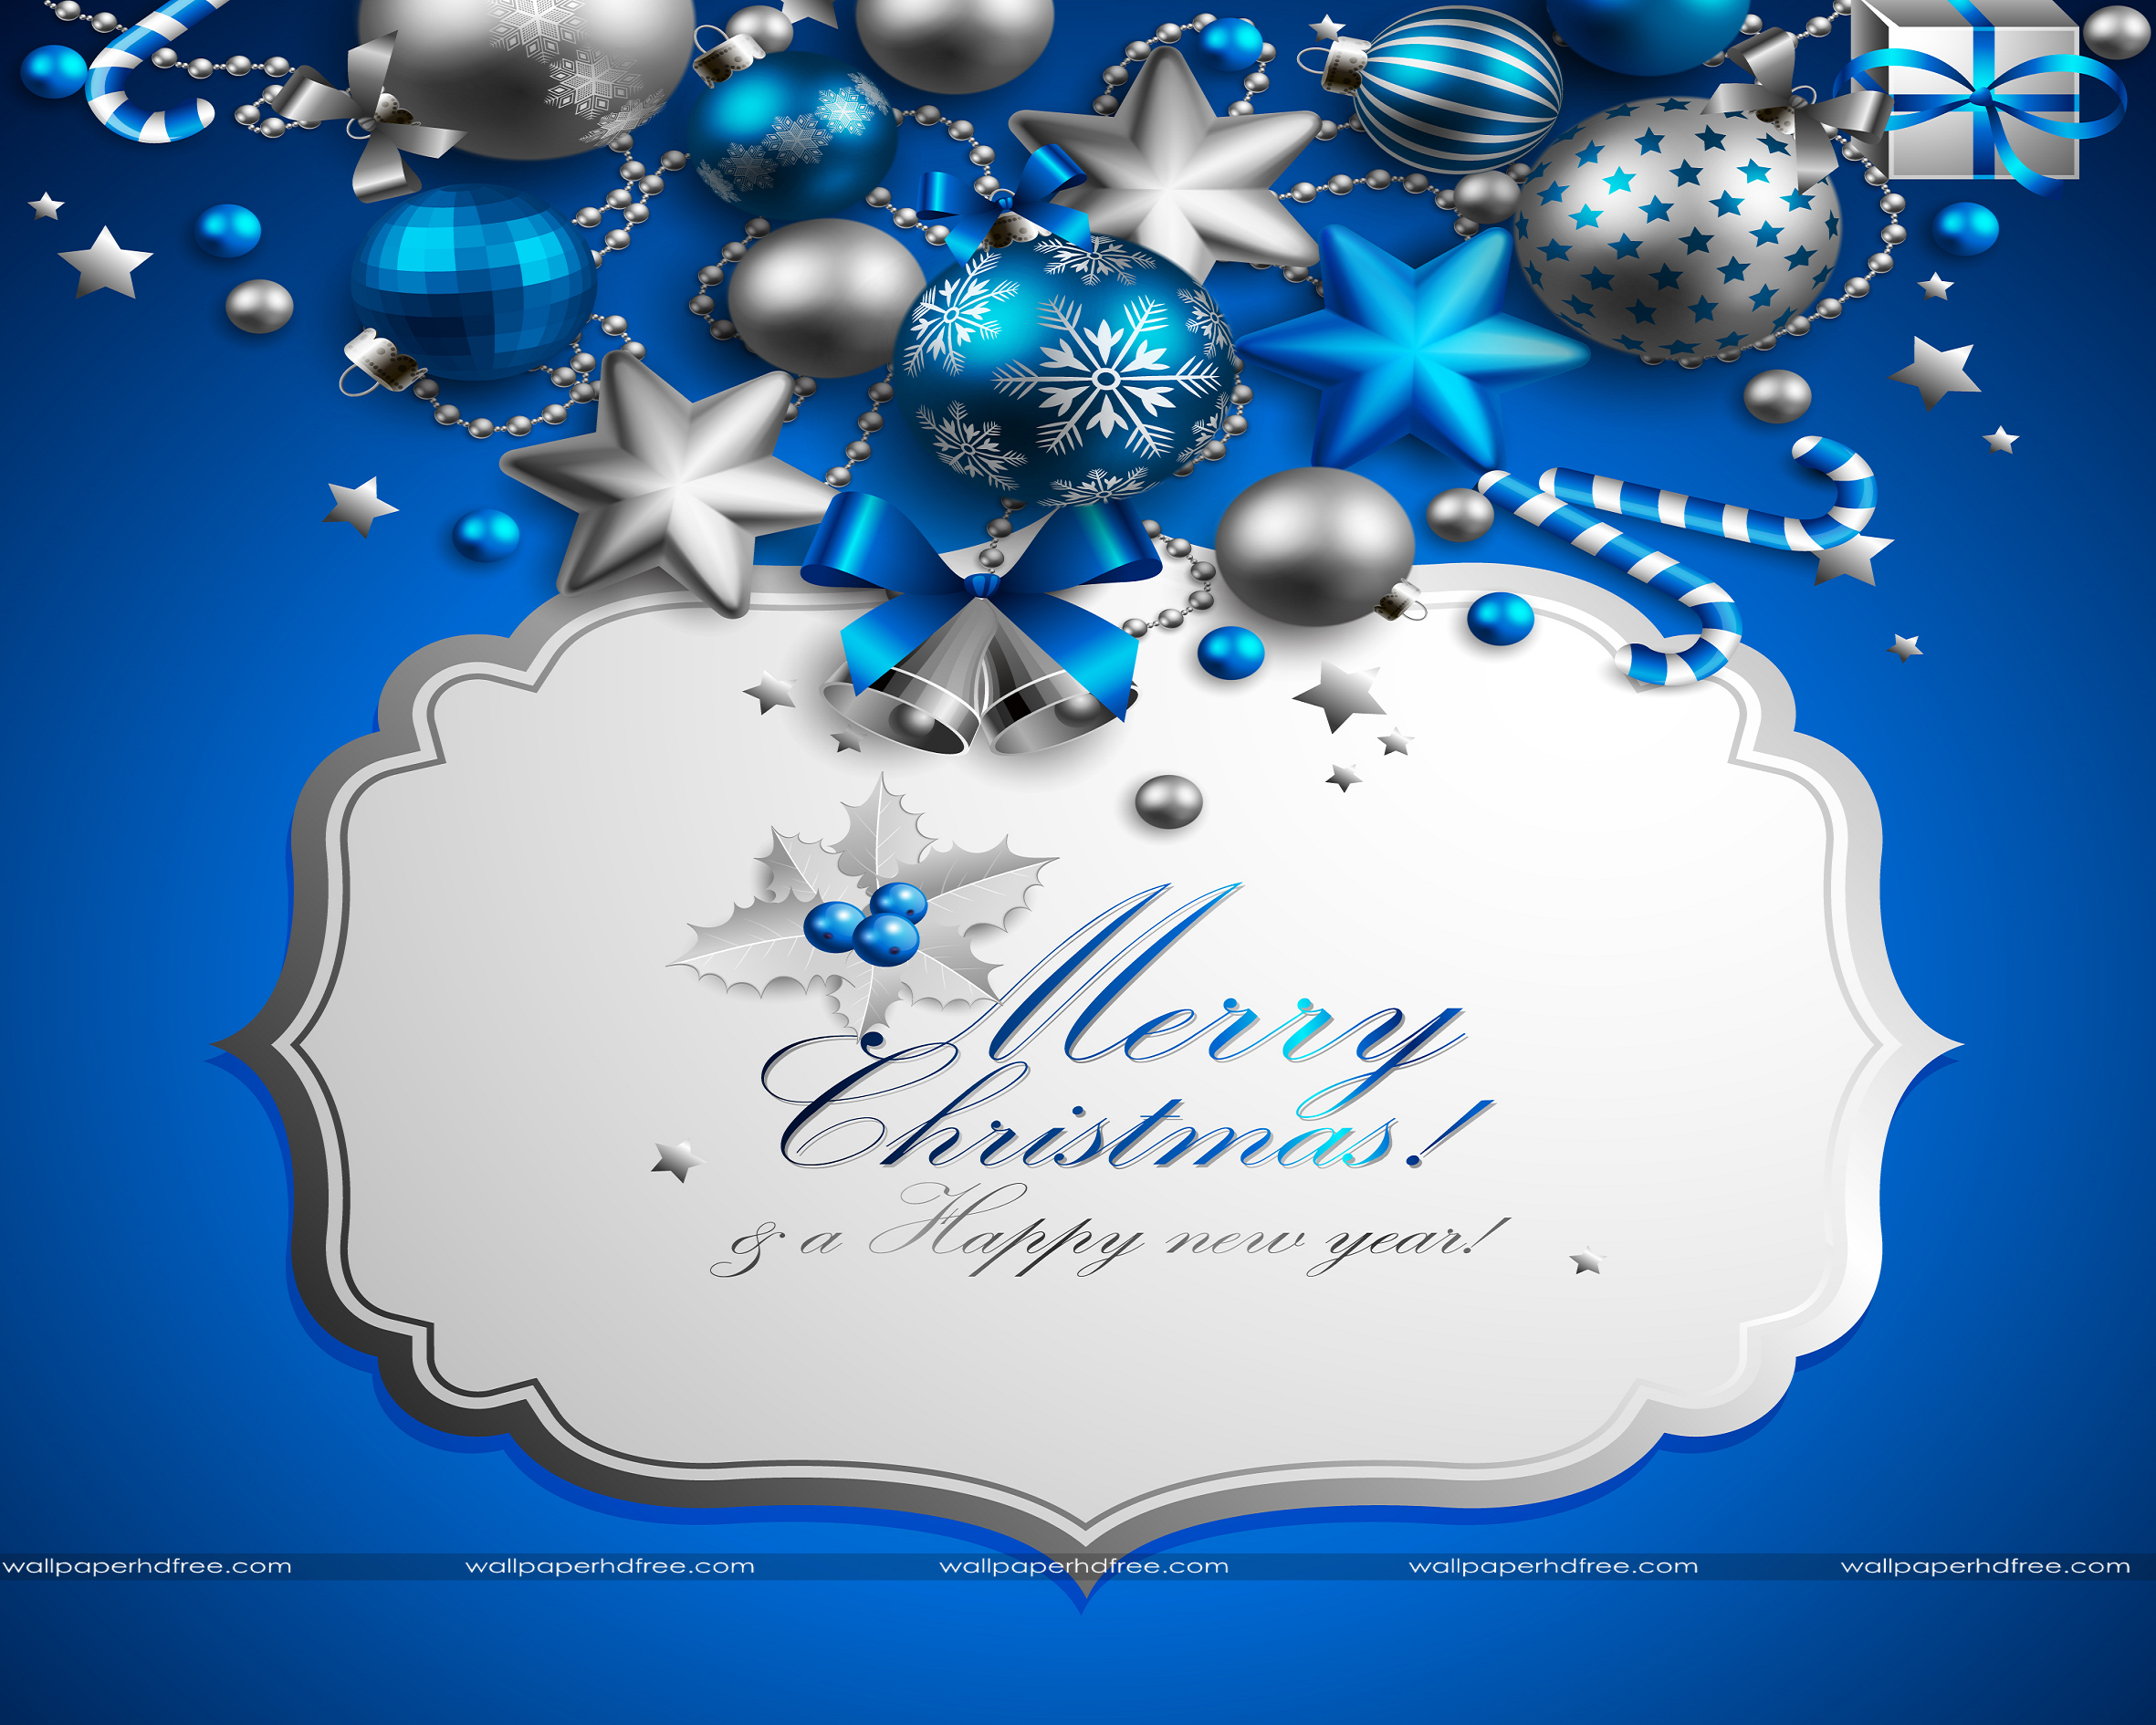 Happy-Christmas-2014-Greetings-Download-Free